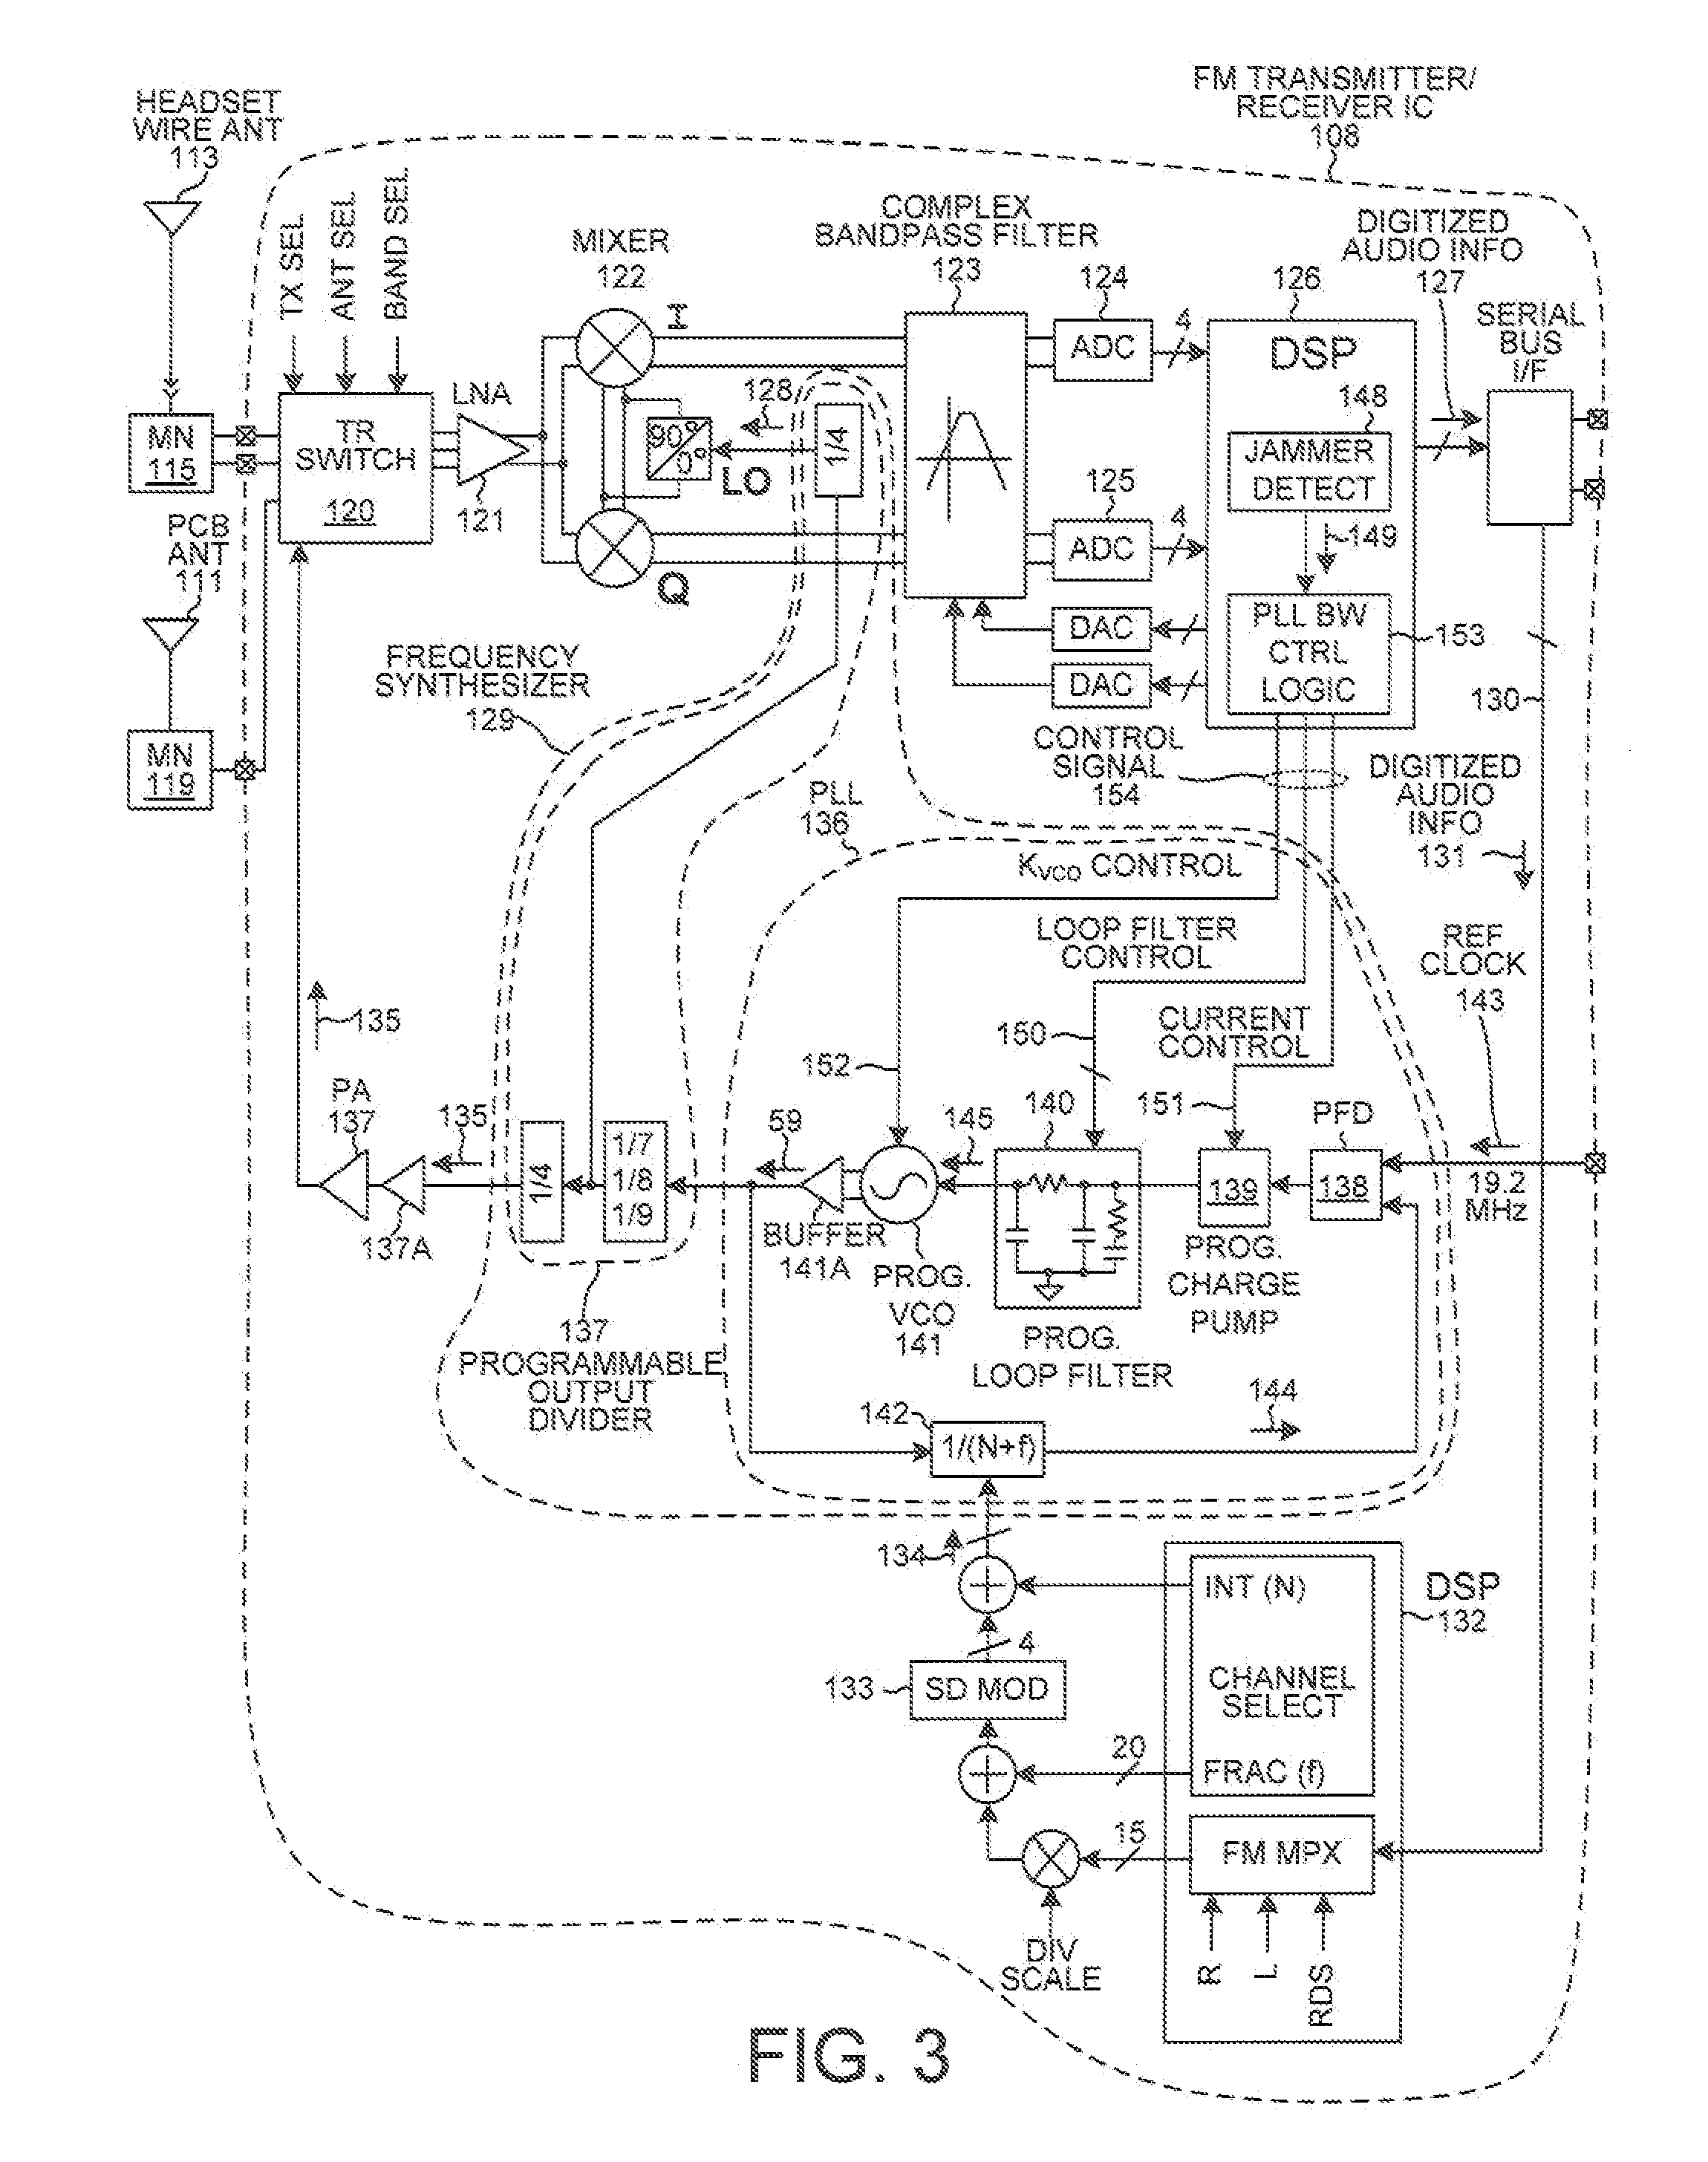 patent us20100273442 jammer detection based adaptive pll bandwidth Signal Receiver Icon patent drawing